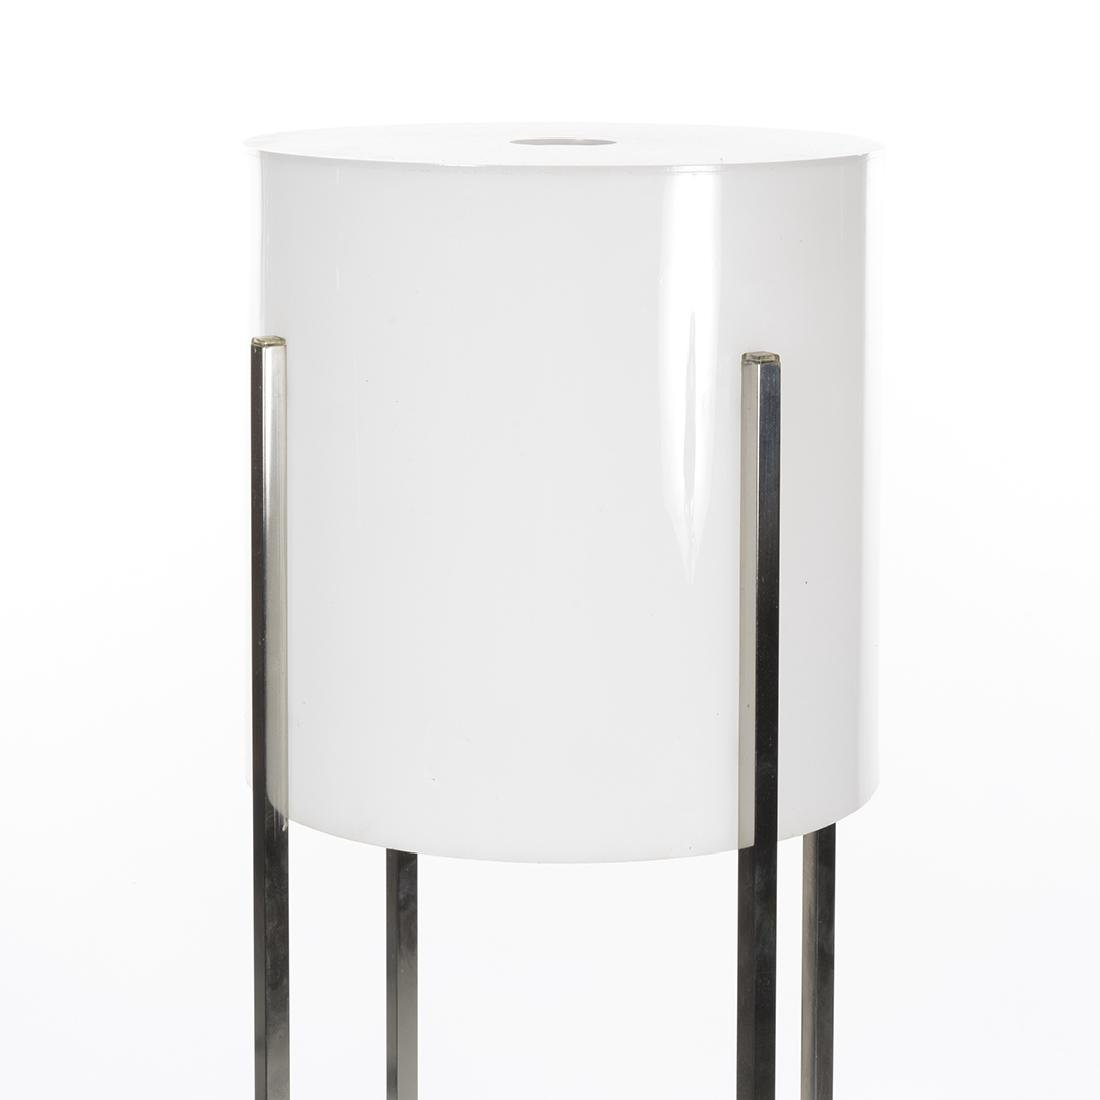 Paul Mayen Floor Lamp - 2